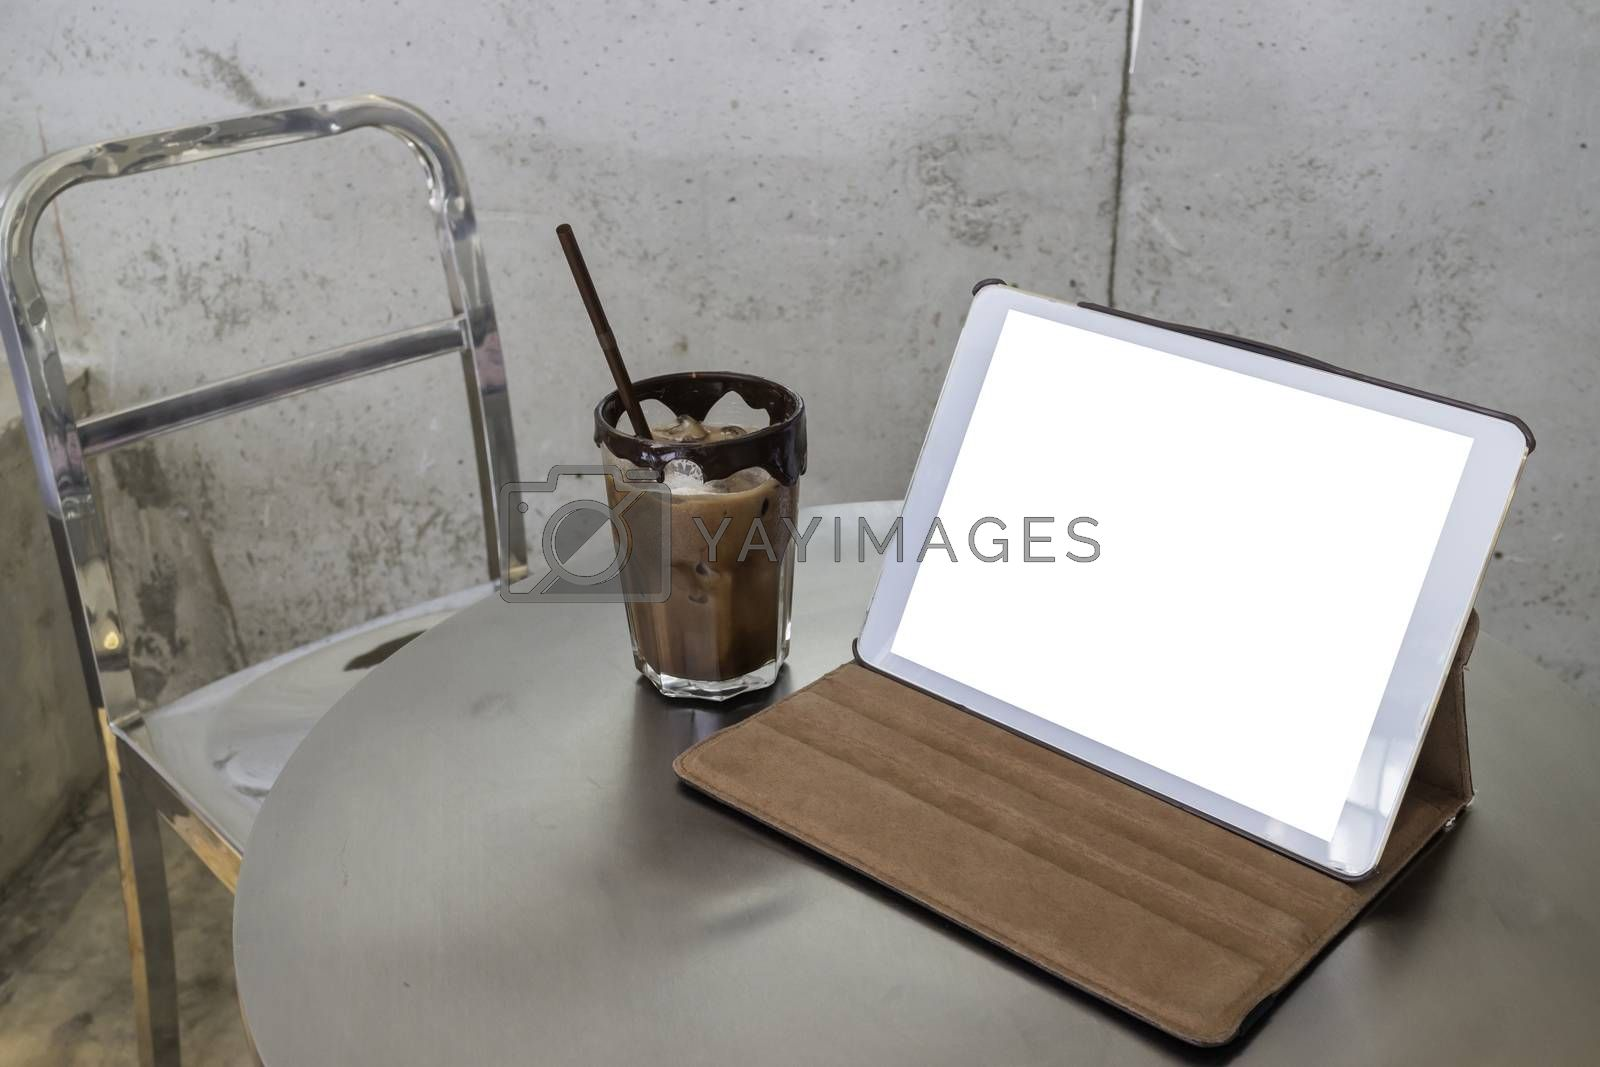 Mobile working in coffee shop with table, stock photo